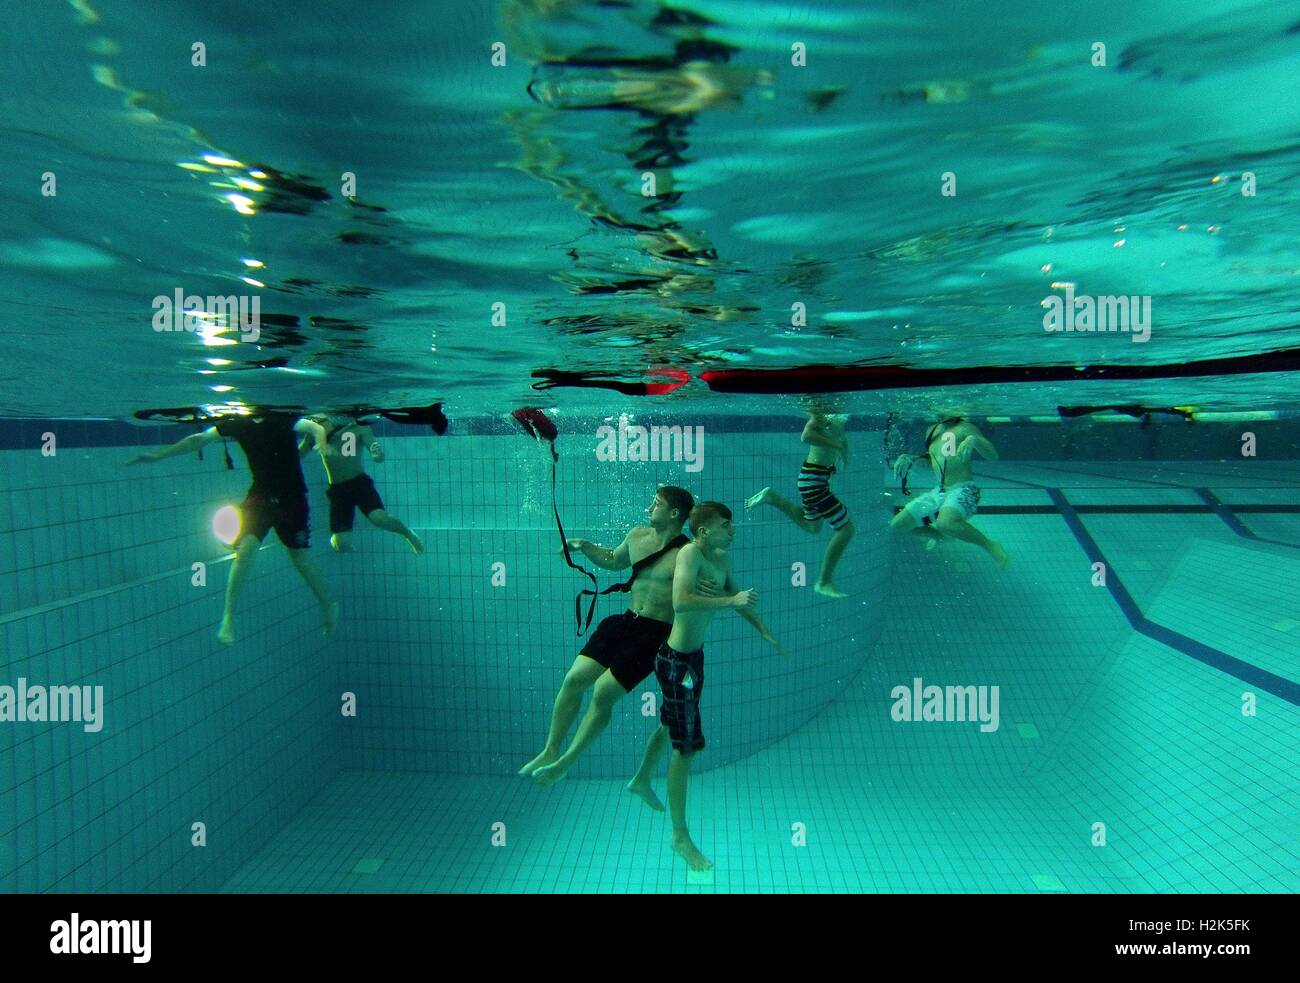 Participants practice rescuing a drowning victim in a pool during a lifeguard course simulation at the Ramstein - Stock Image